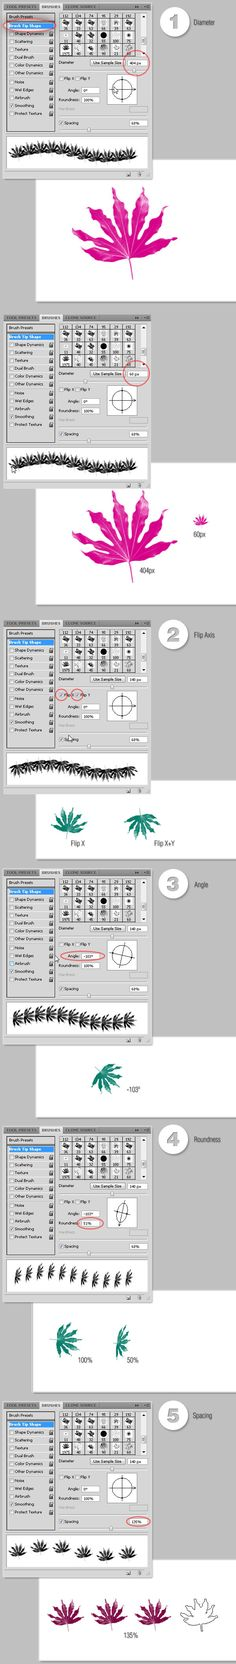 This time I've got for you a really basic guide, which is useful for beginners and people interested in learning a little bit more deeply the power of Photoshop's Brush Tool. Every single Photoshop...